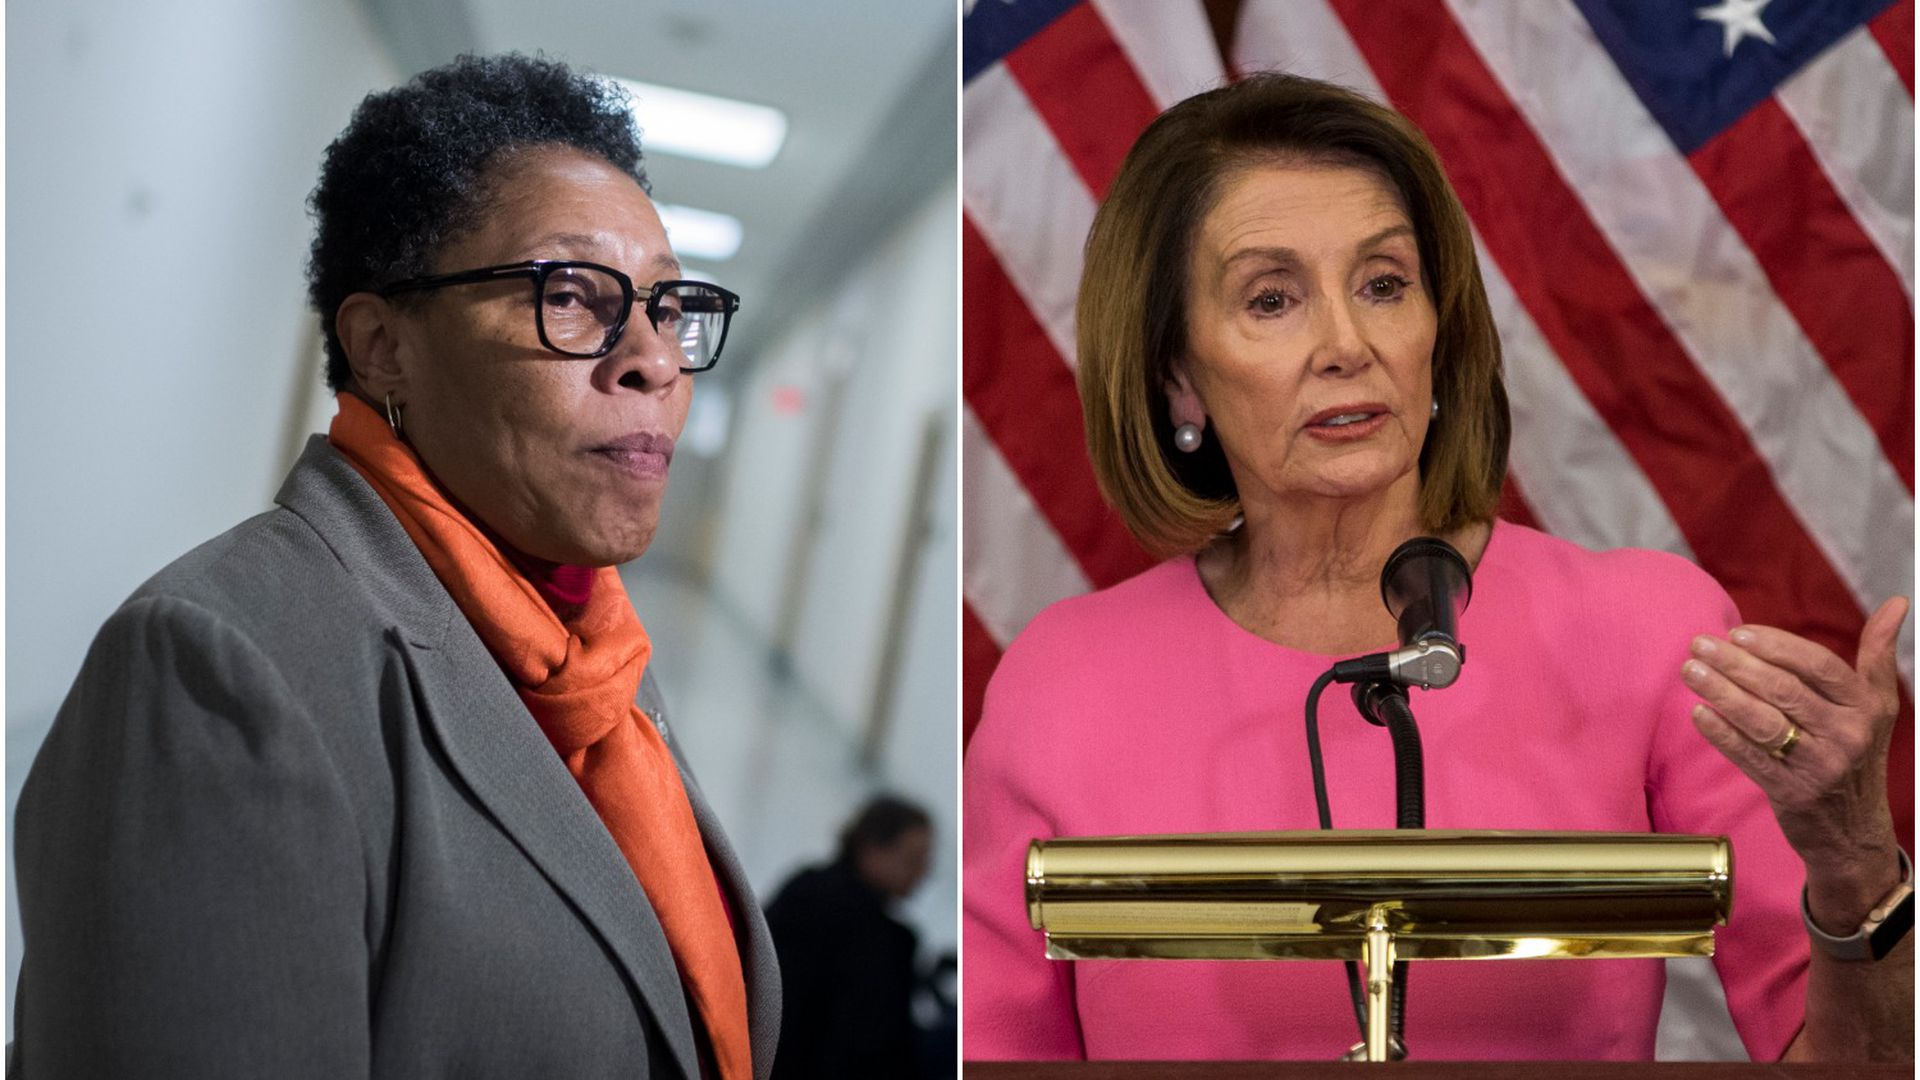 Side by side photos of Reps. Marcia Fudge and Nancy Pelosi